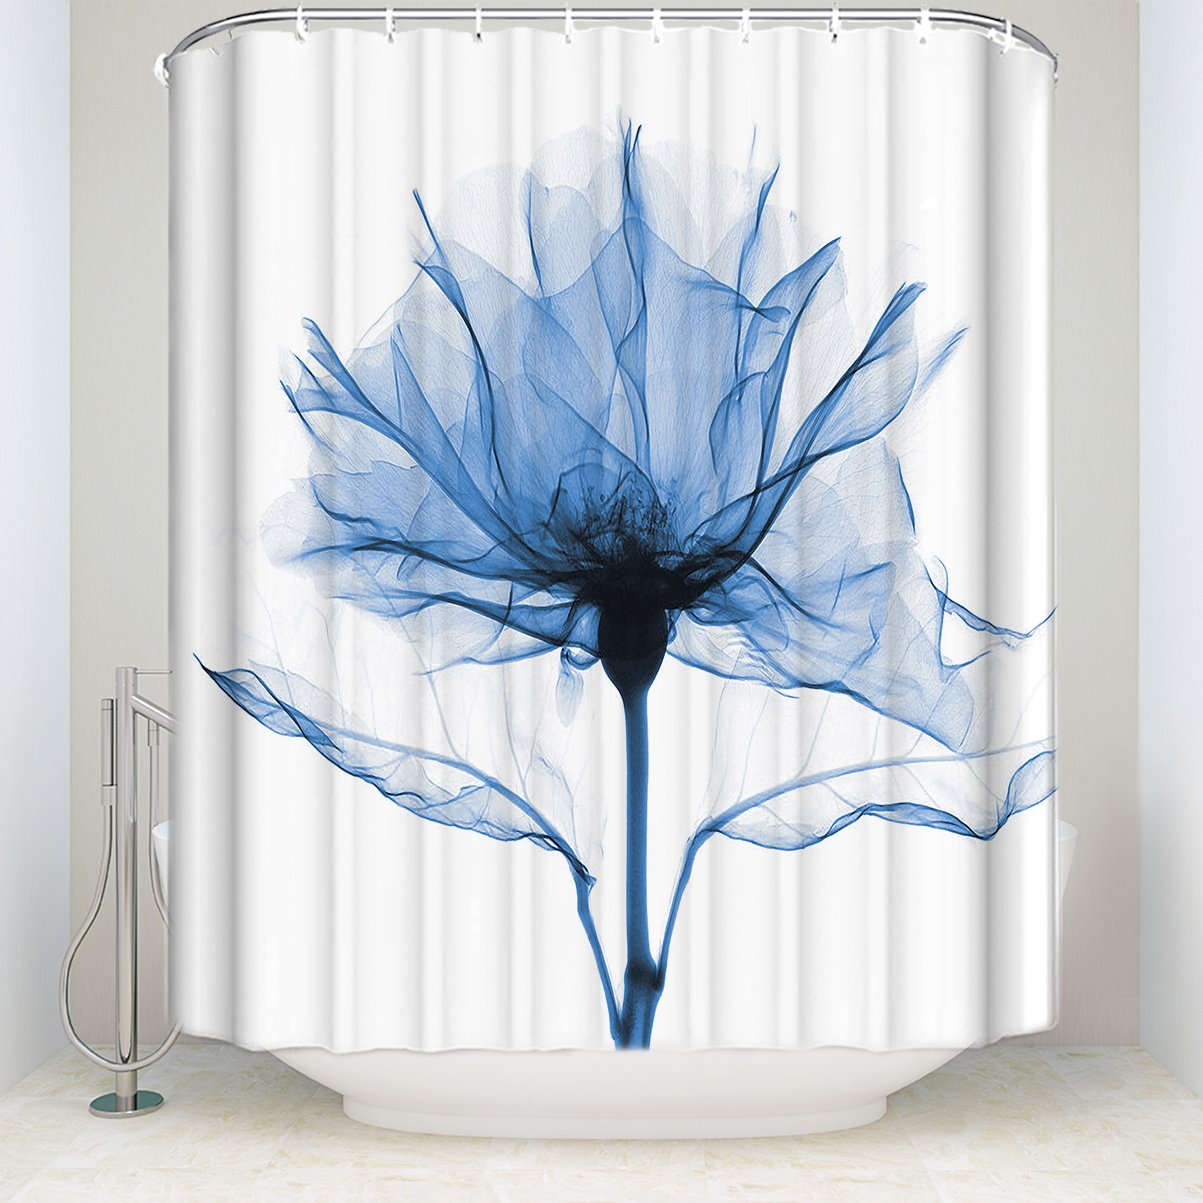 Chic D Blue Rose Flowers Florals Extra Long Hookless Shower Curtain Bathroom Polyester Fabric Bath Curtains72 X 78 Large Size Trio Ray Themed